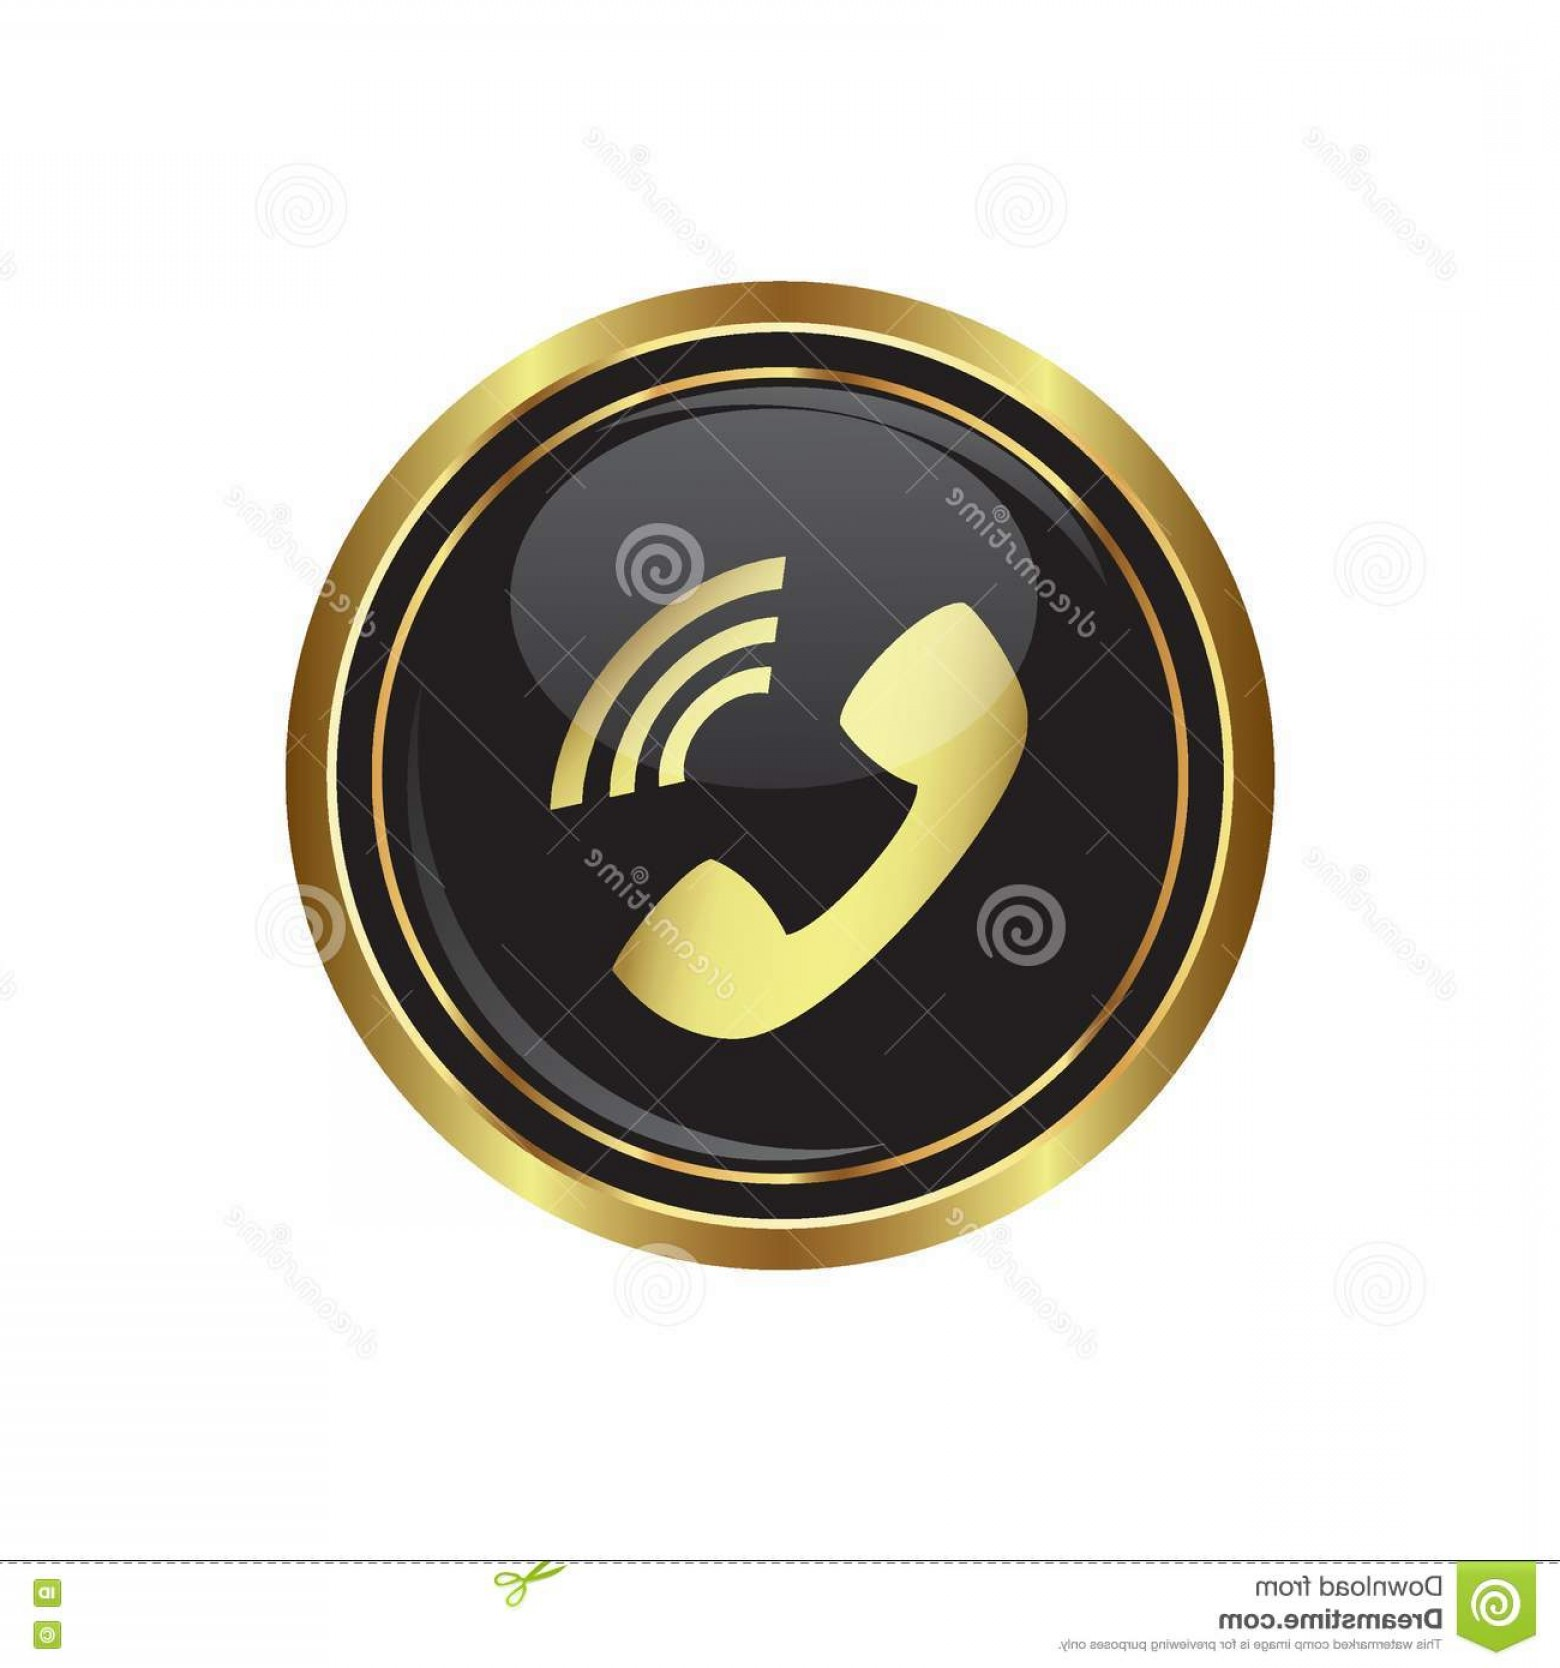 Gold Button Vector: Stock Illustration Telephone Receiver Icon Black Gold Round Button Vector Illustration Image